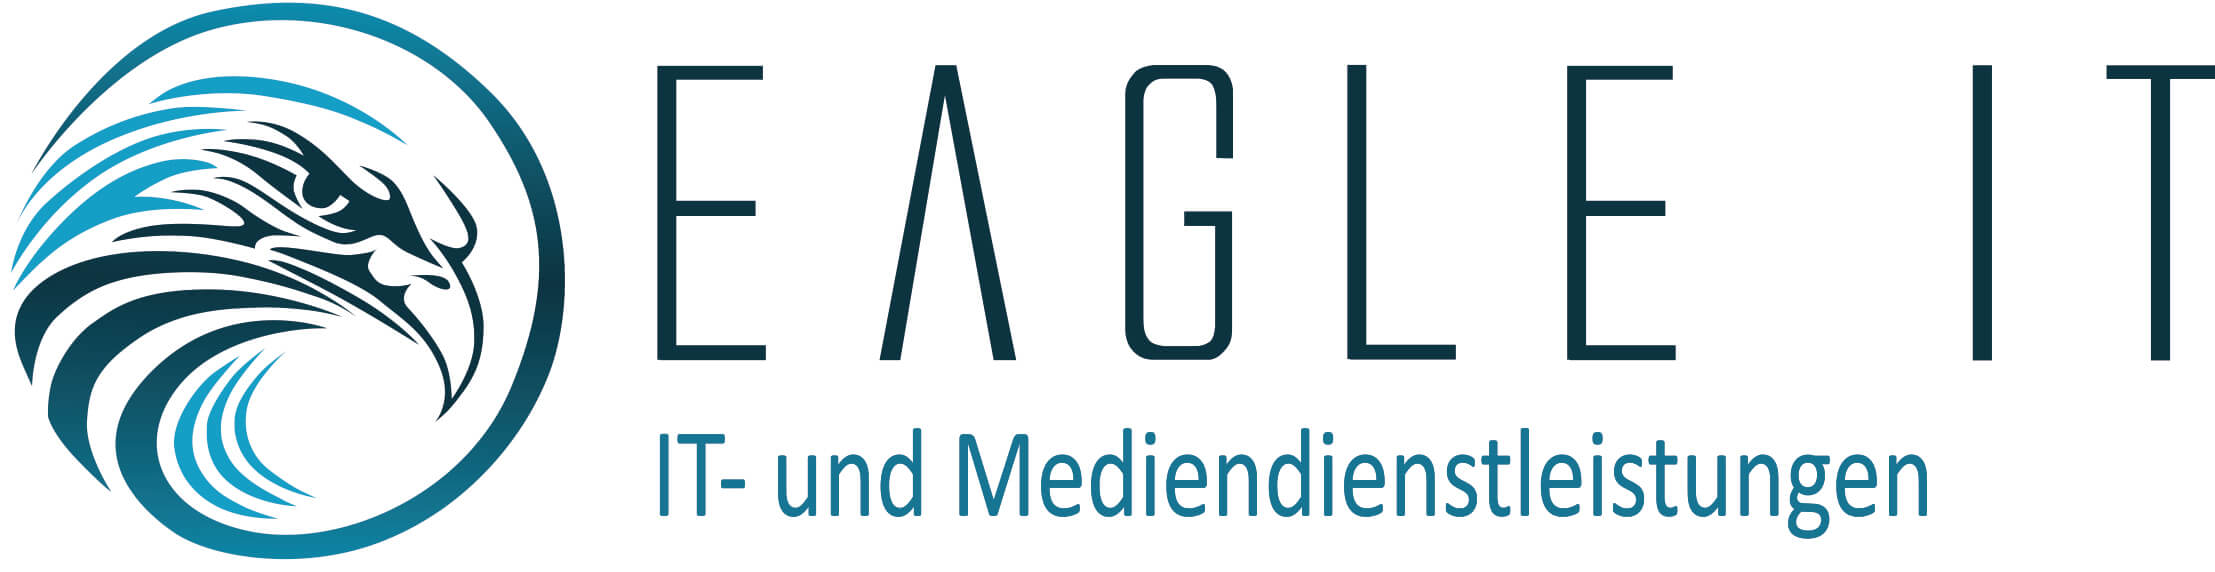 EAGLE IT Solutions | Innovative IT- und Mediendienstleistungen